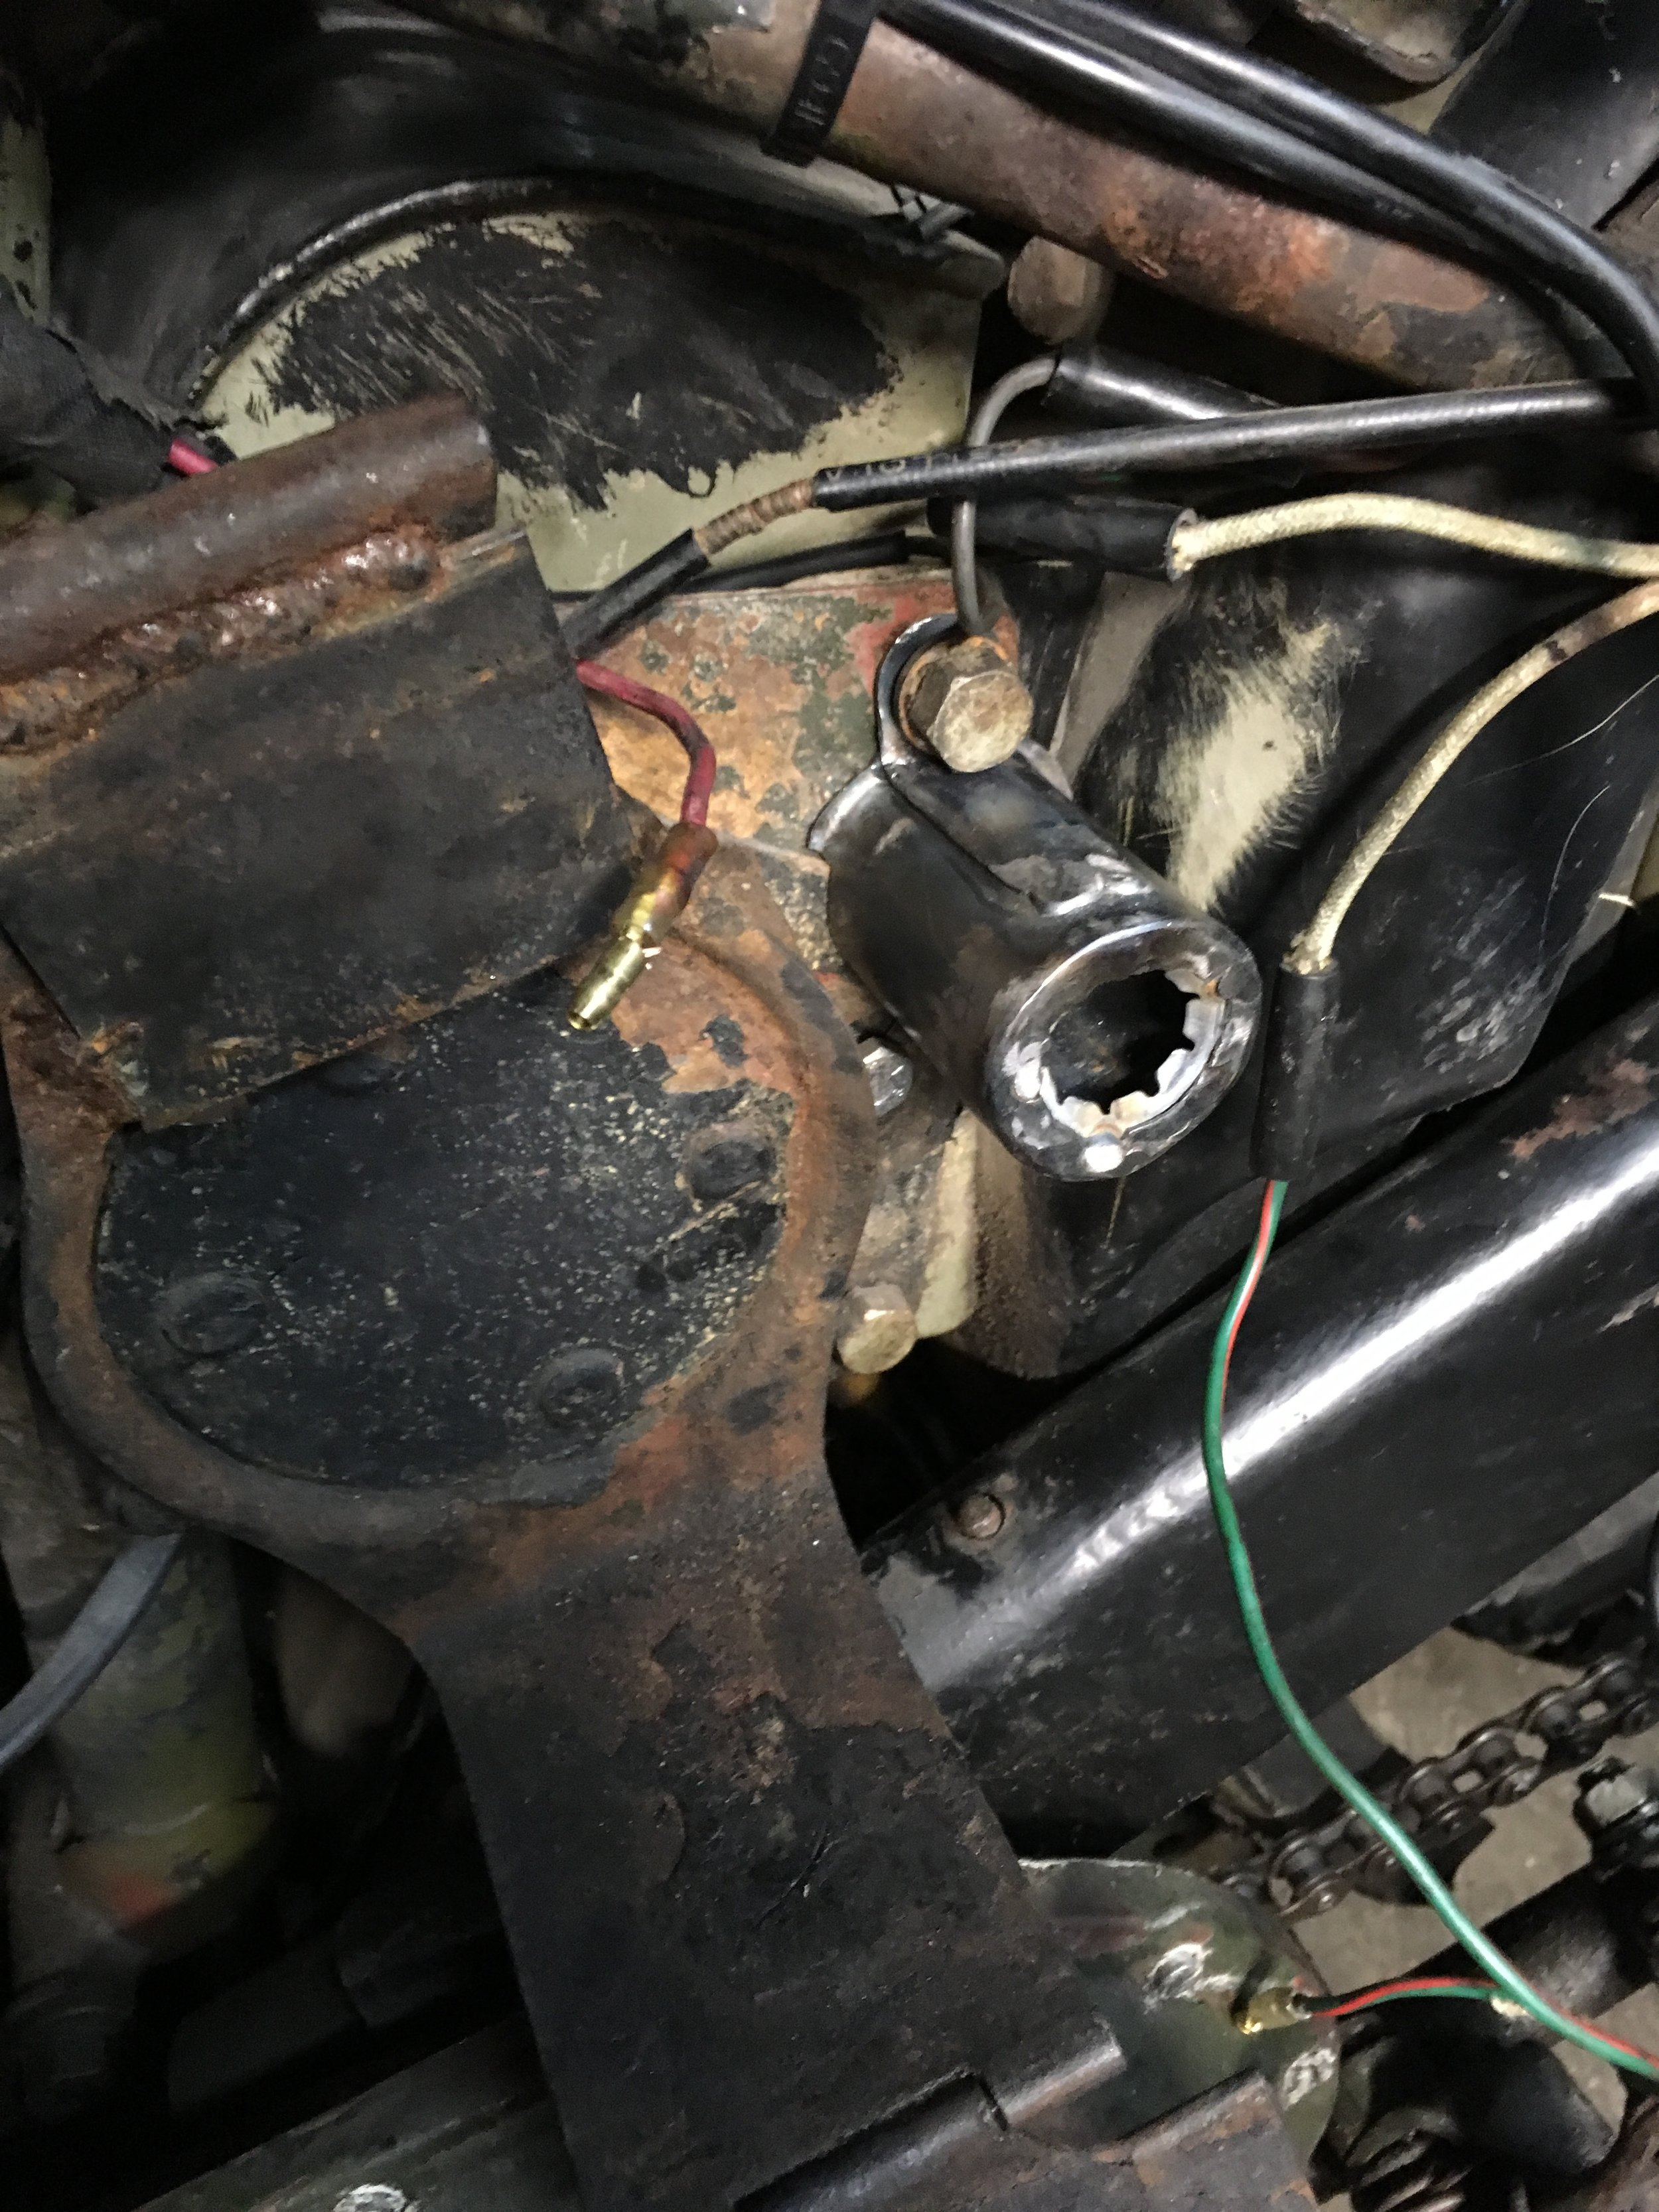 A small cylinder was fabbed up from 22 gauge steel to hold the battery disconnect switch. An existing bolt was used to mount it behind the battery box.